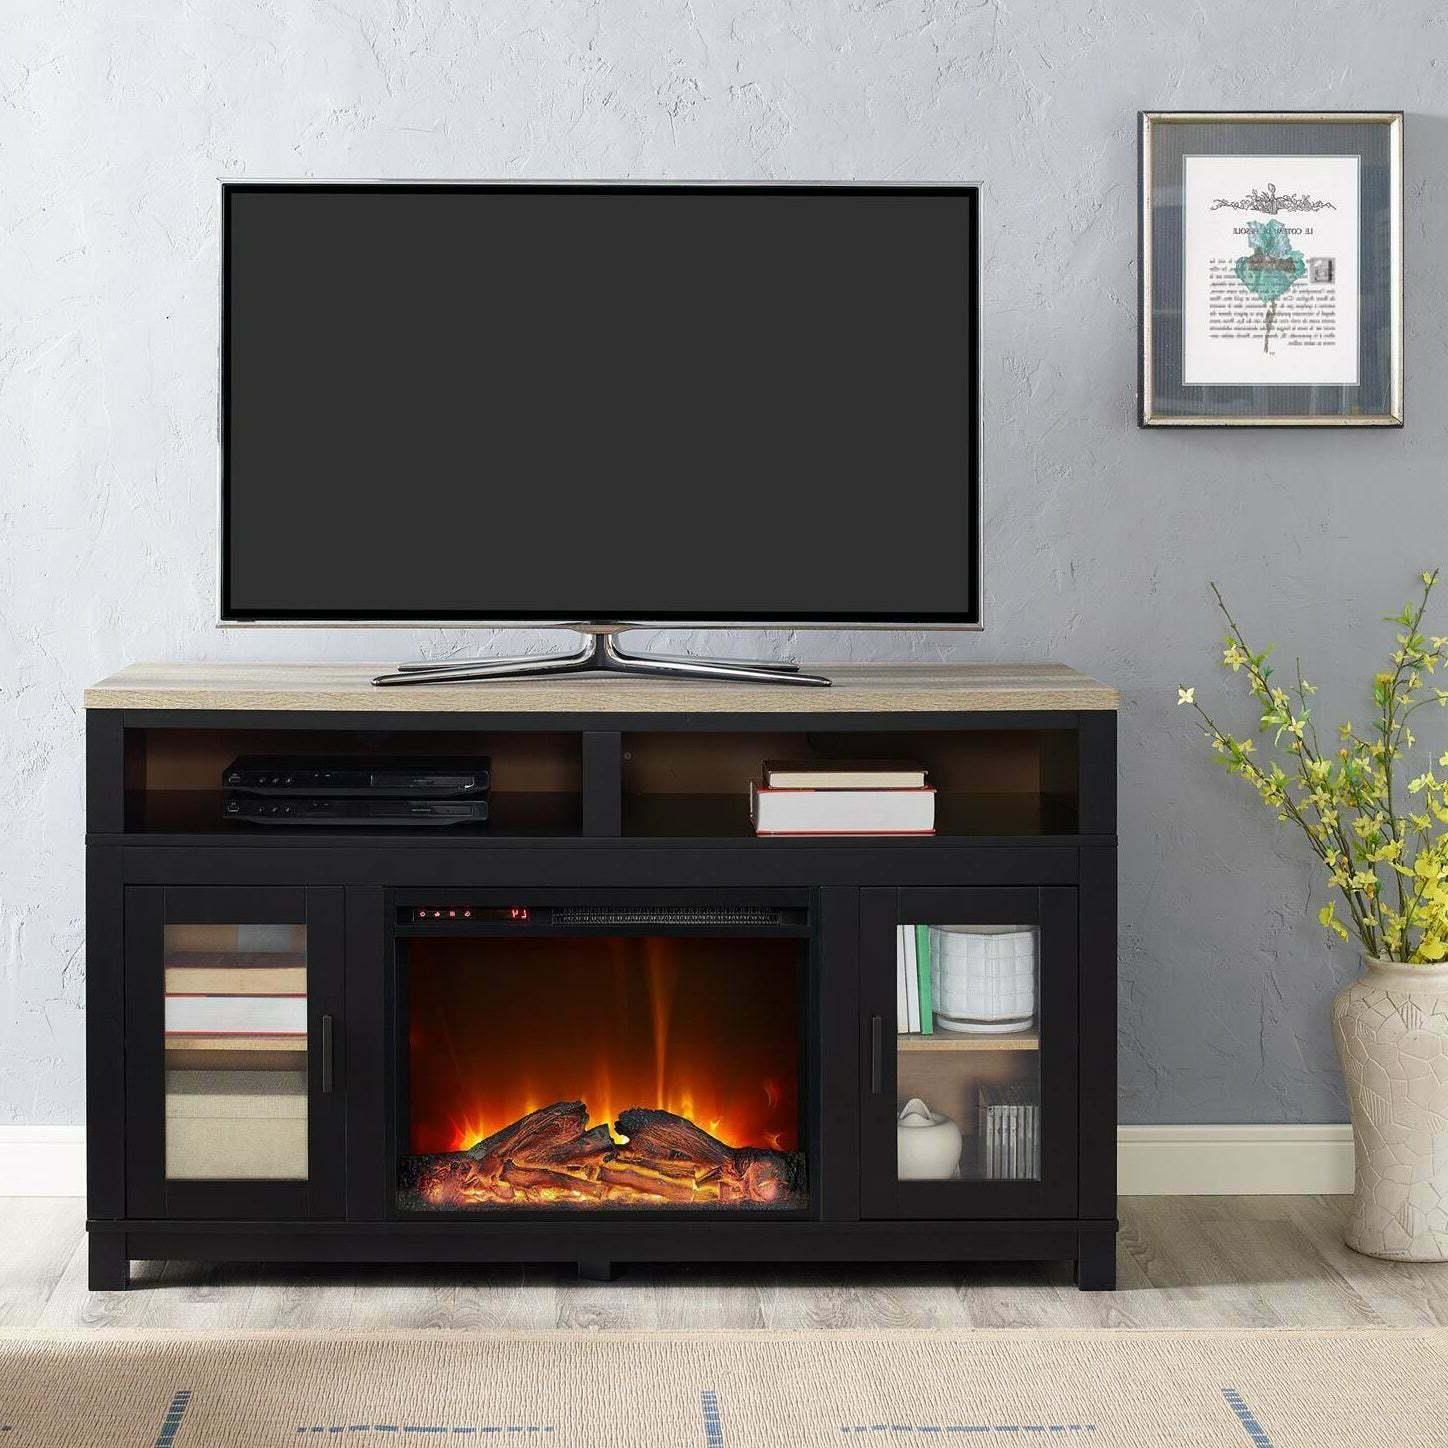 led electric firebox with heater and bluetooth